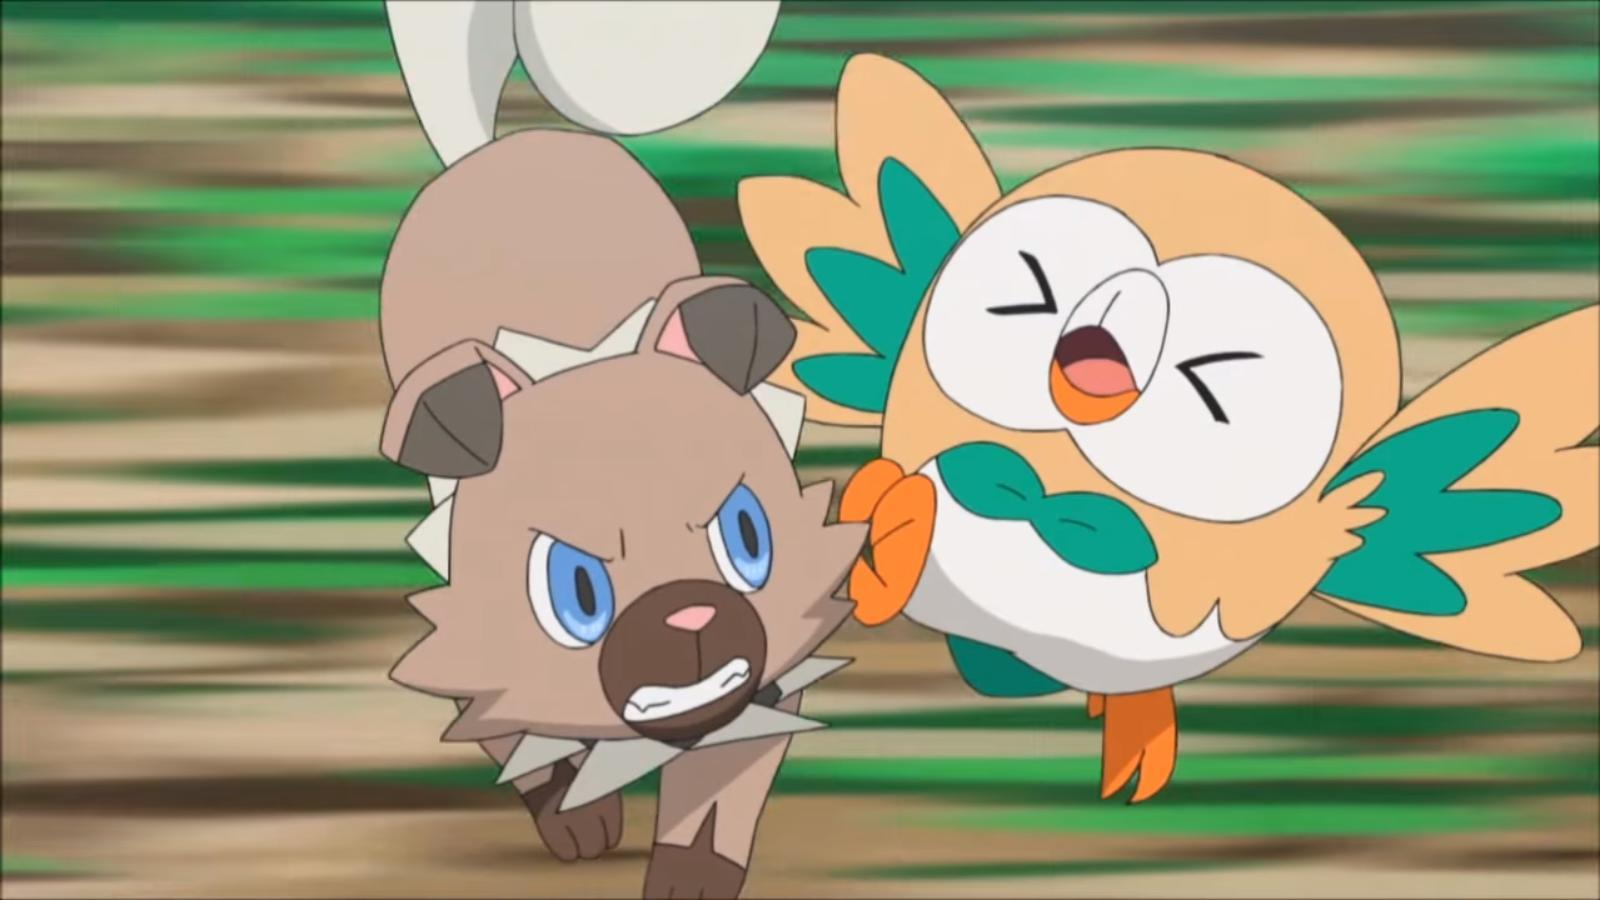 Rockruff attacks Rowlet Blank Template - Imgflip